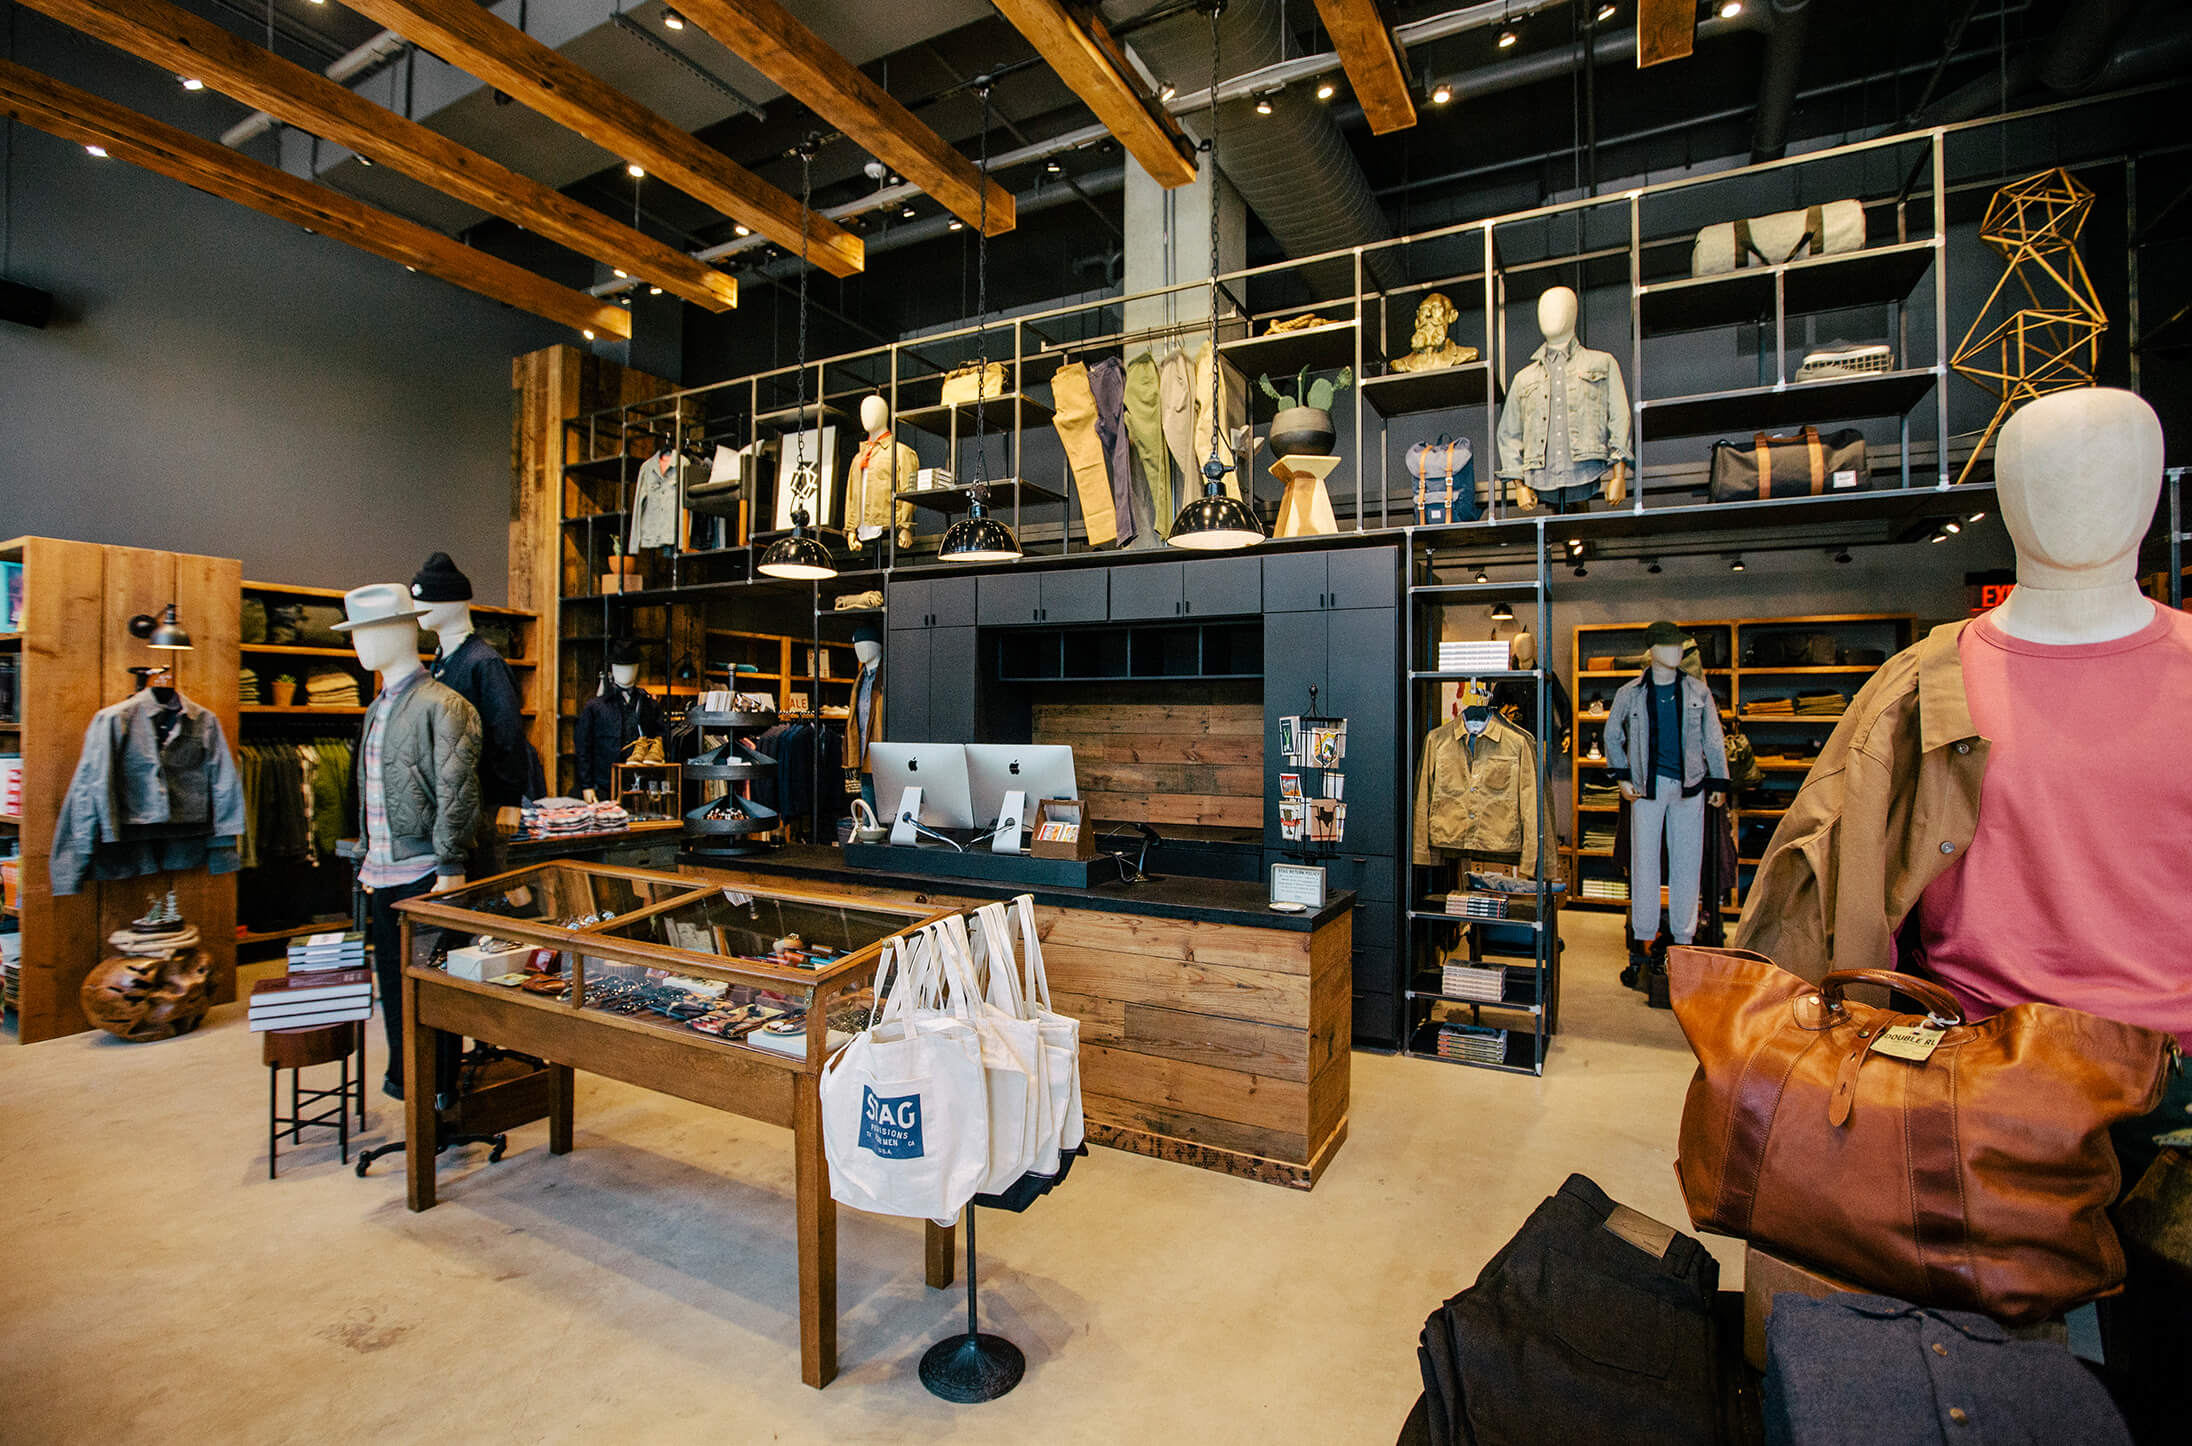 Interior of STAG retail store